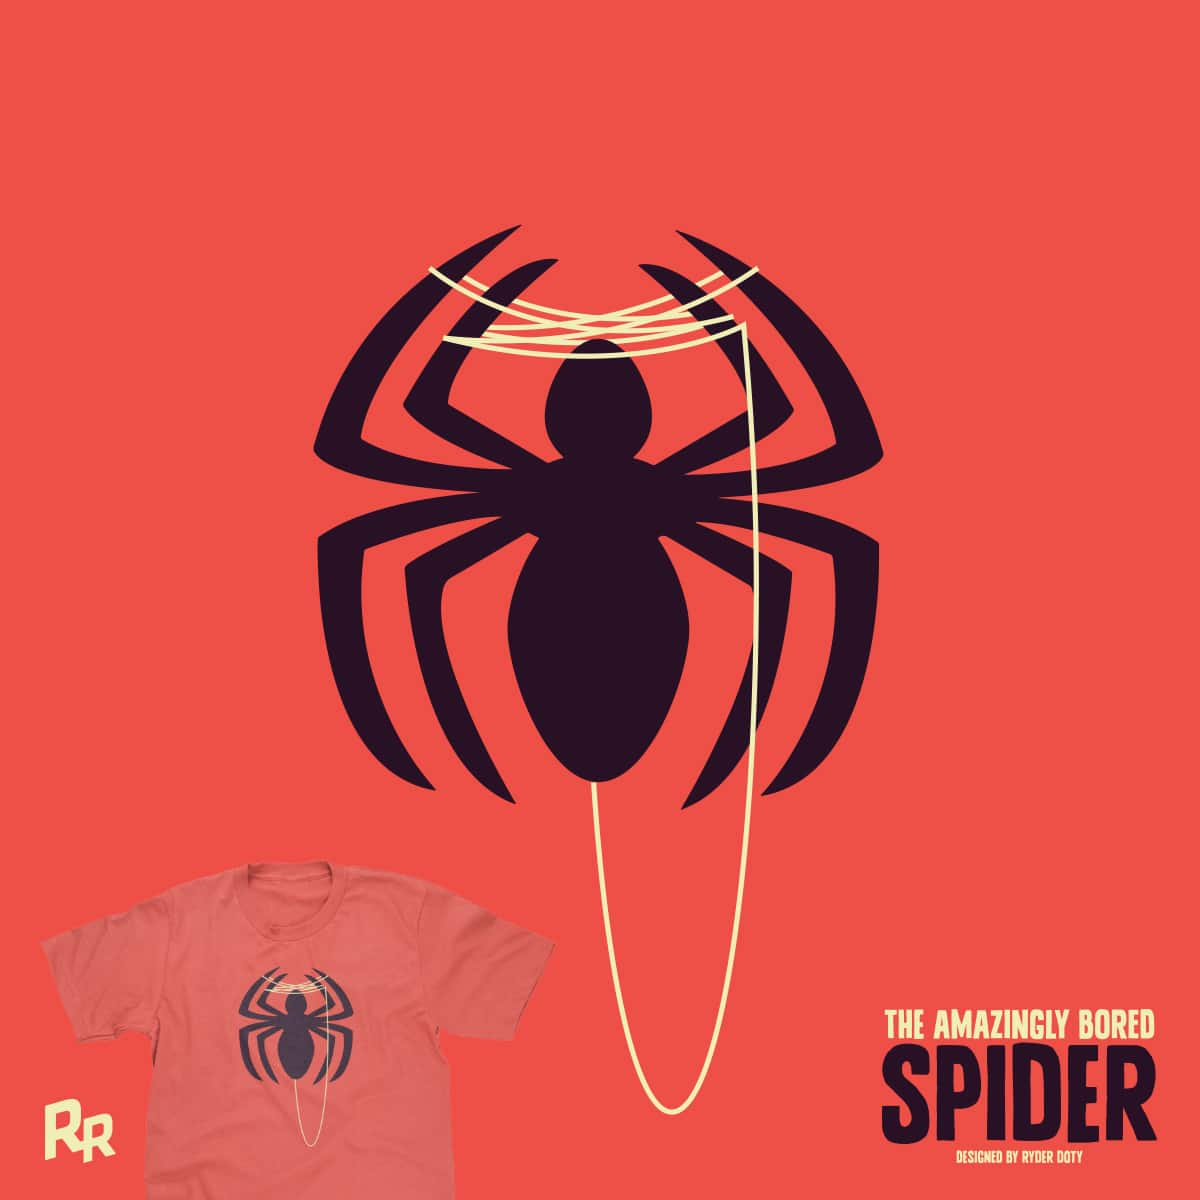 The Amazingly Bored Spider by Ryder on Threadless